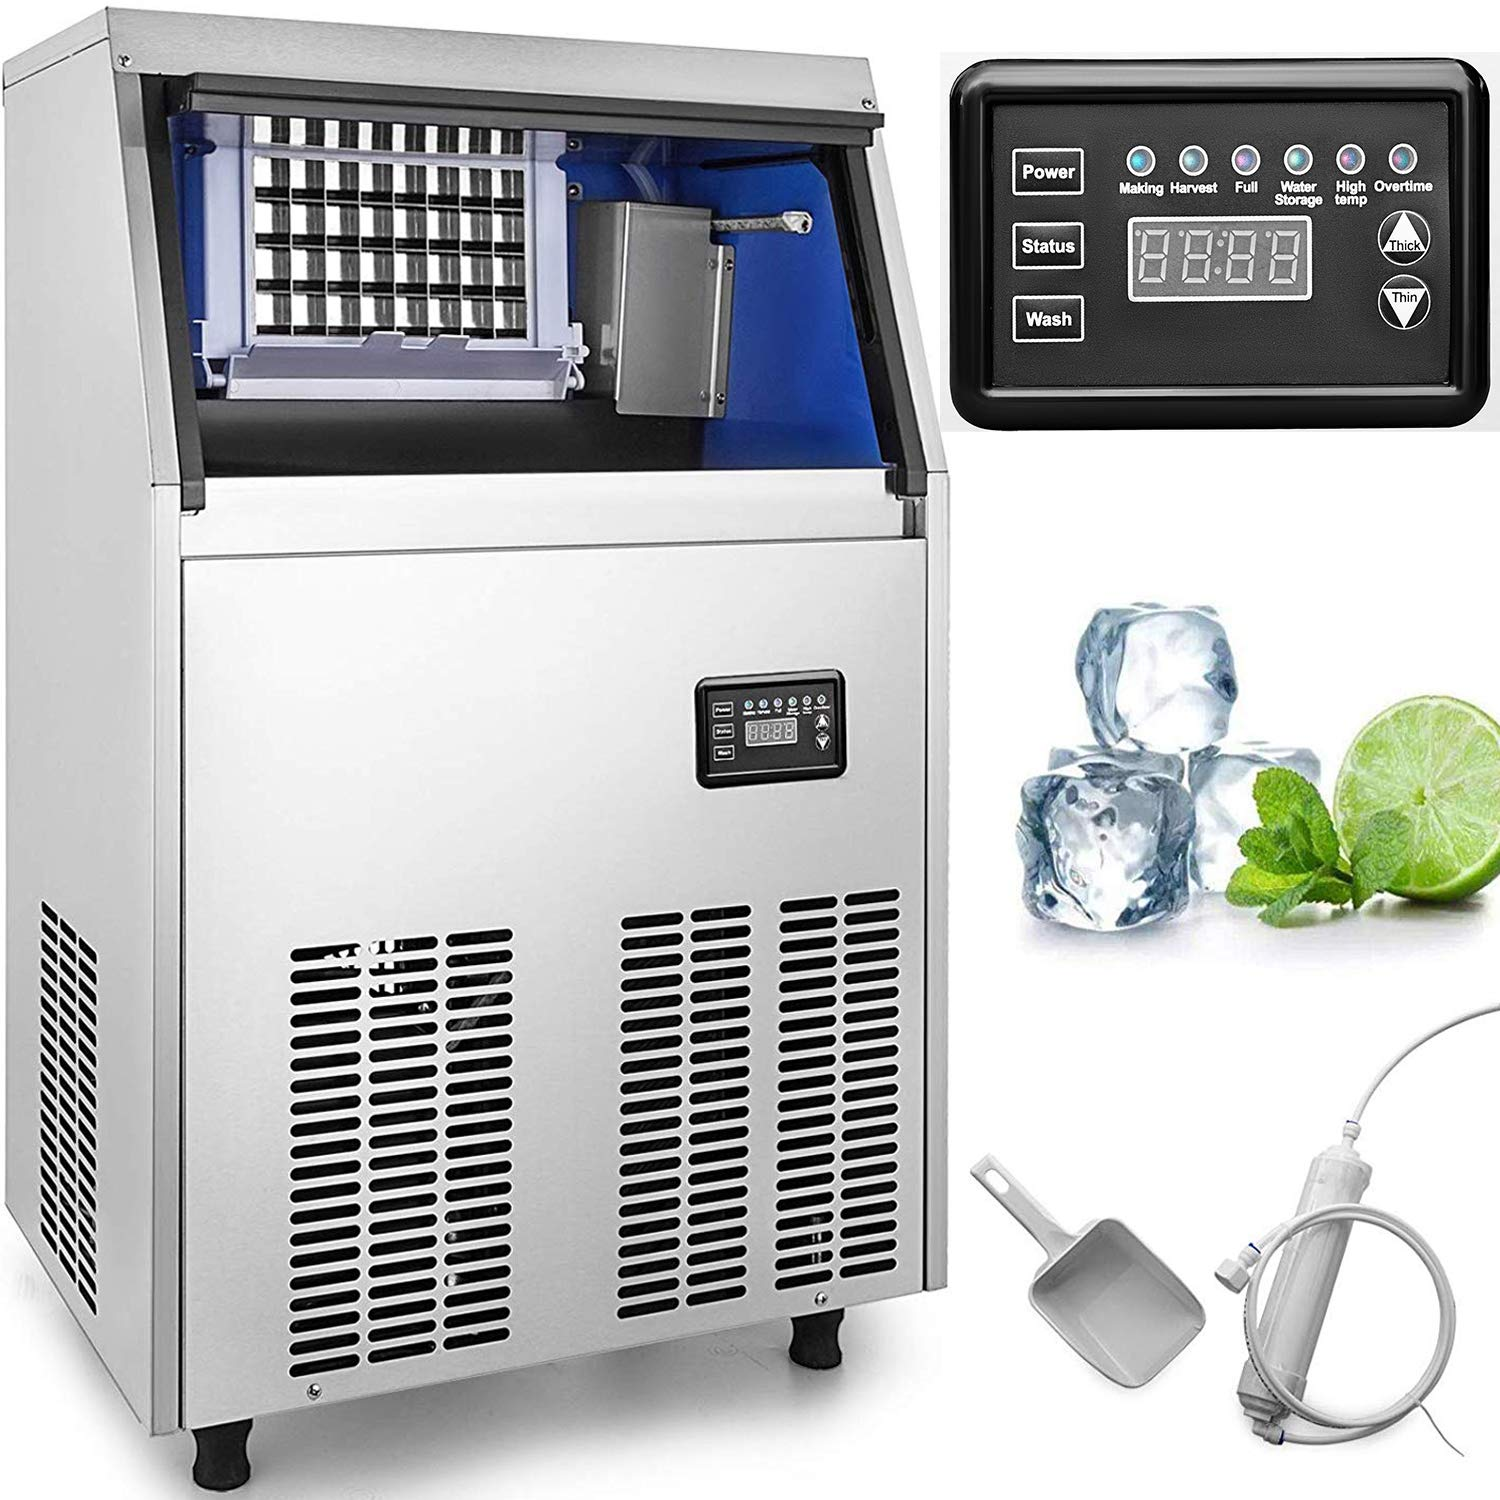 VEVOR 110V Commercial Ice Maker 110LBS/24H with 44lbs Storage Capacity Stainless Steel Commercial Ice Machine 40 Ice Cubes Per Plate Industrial Ice Maker Machine Auto Clean for Bar Home Supermarkets